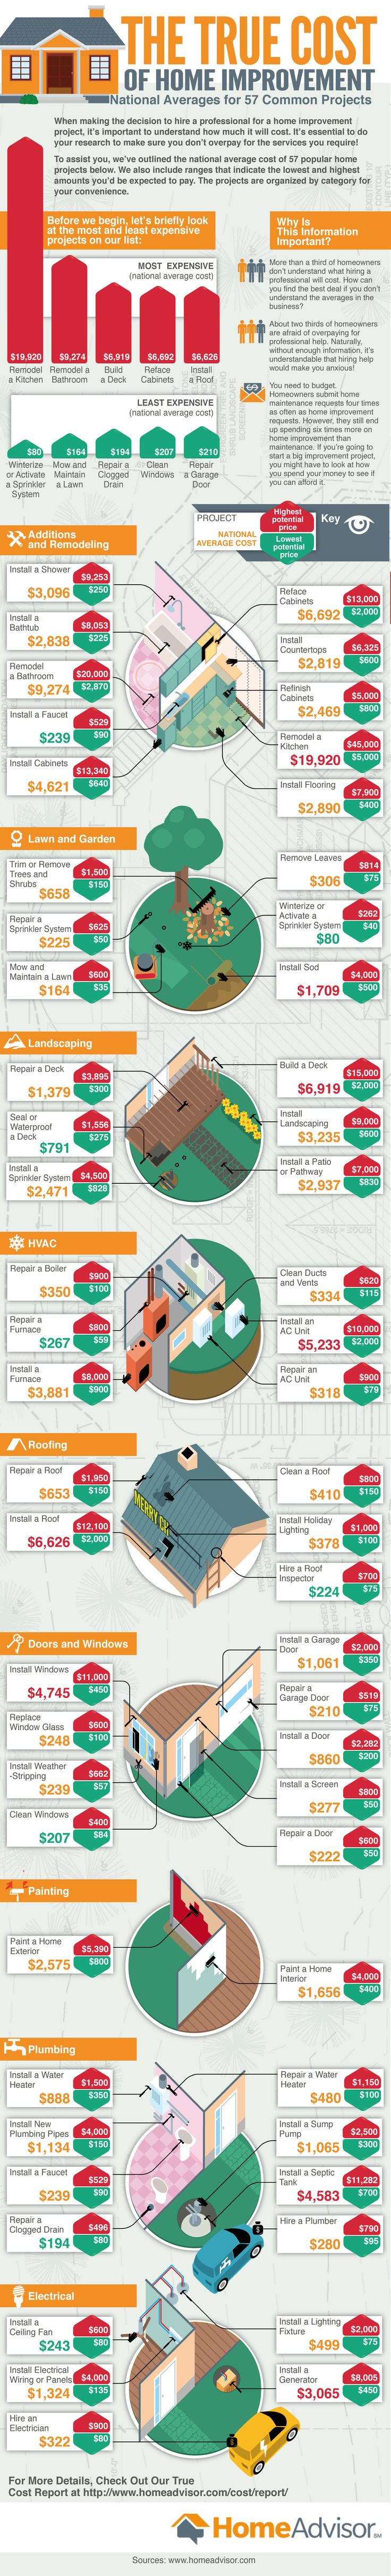 The True Cost of Home Improvement: National Averages for 57 Common Projects #infographic #HomeImprovements